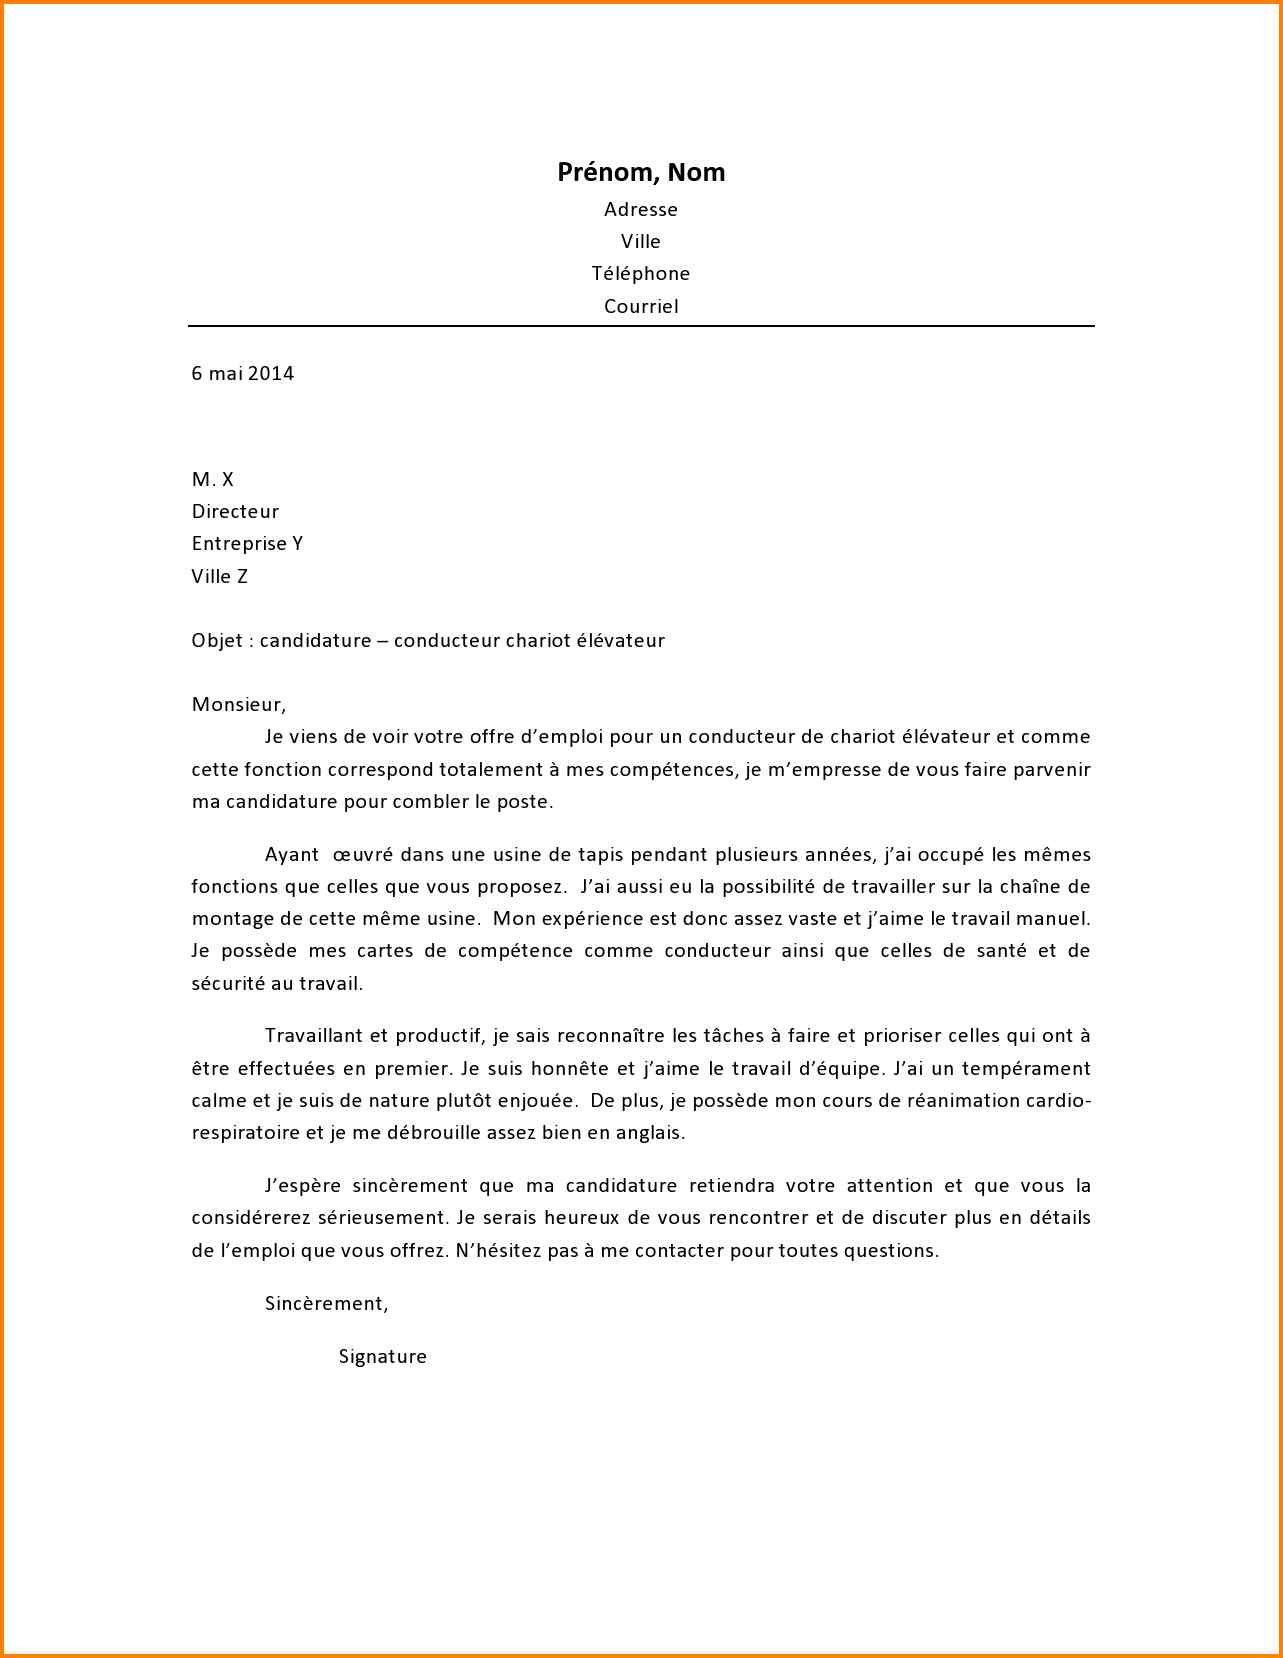 New Lettre De Motivation Jardinier Paysagiste Resume Words Types Of Resumes Functional Resume